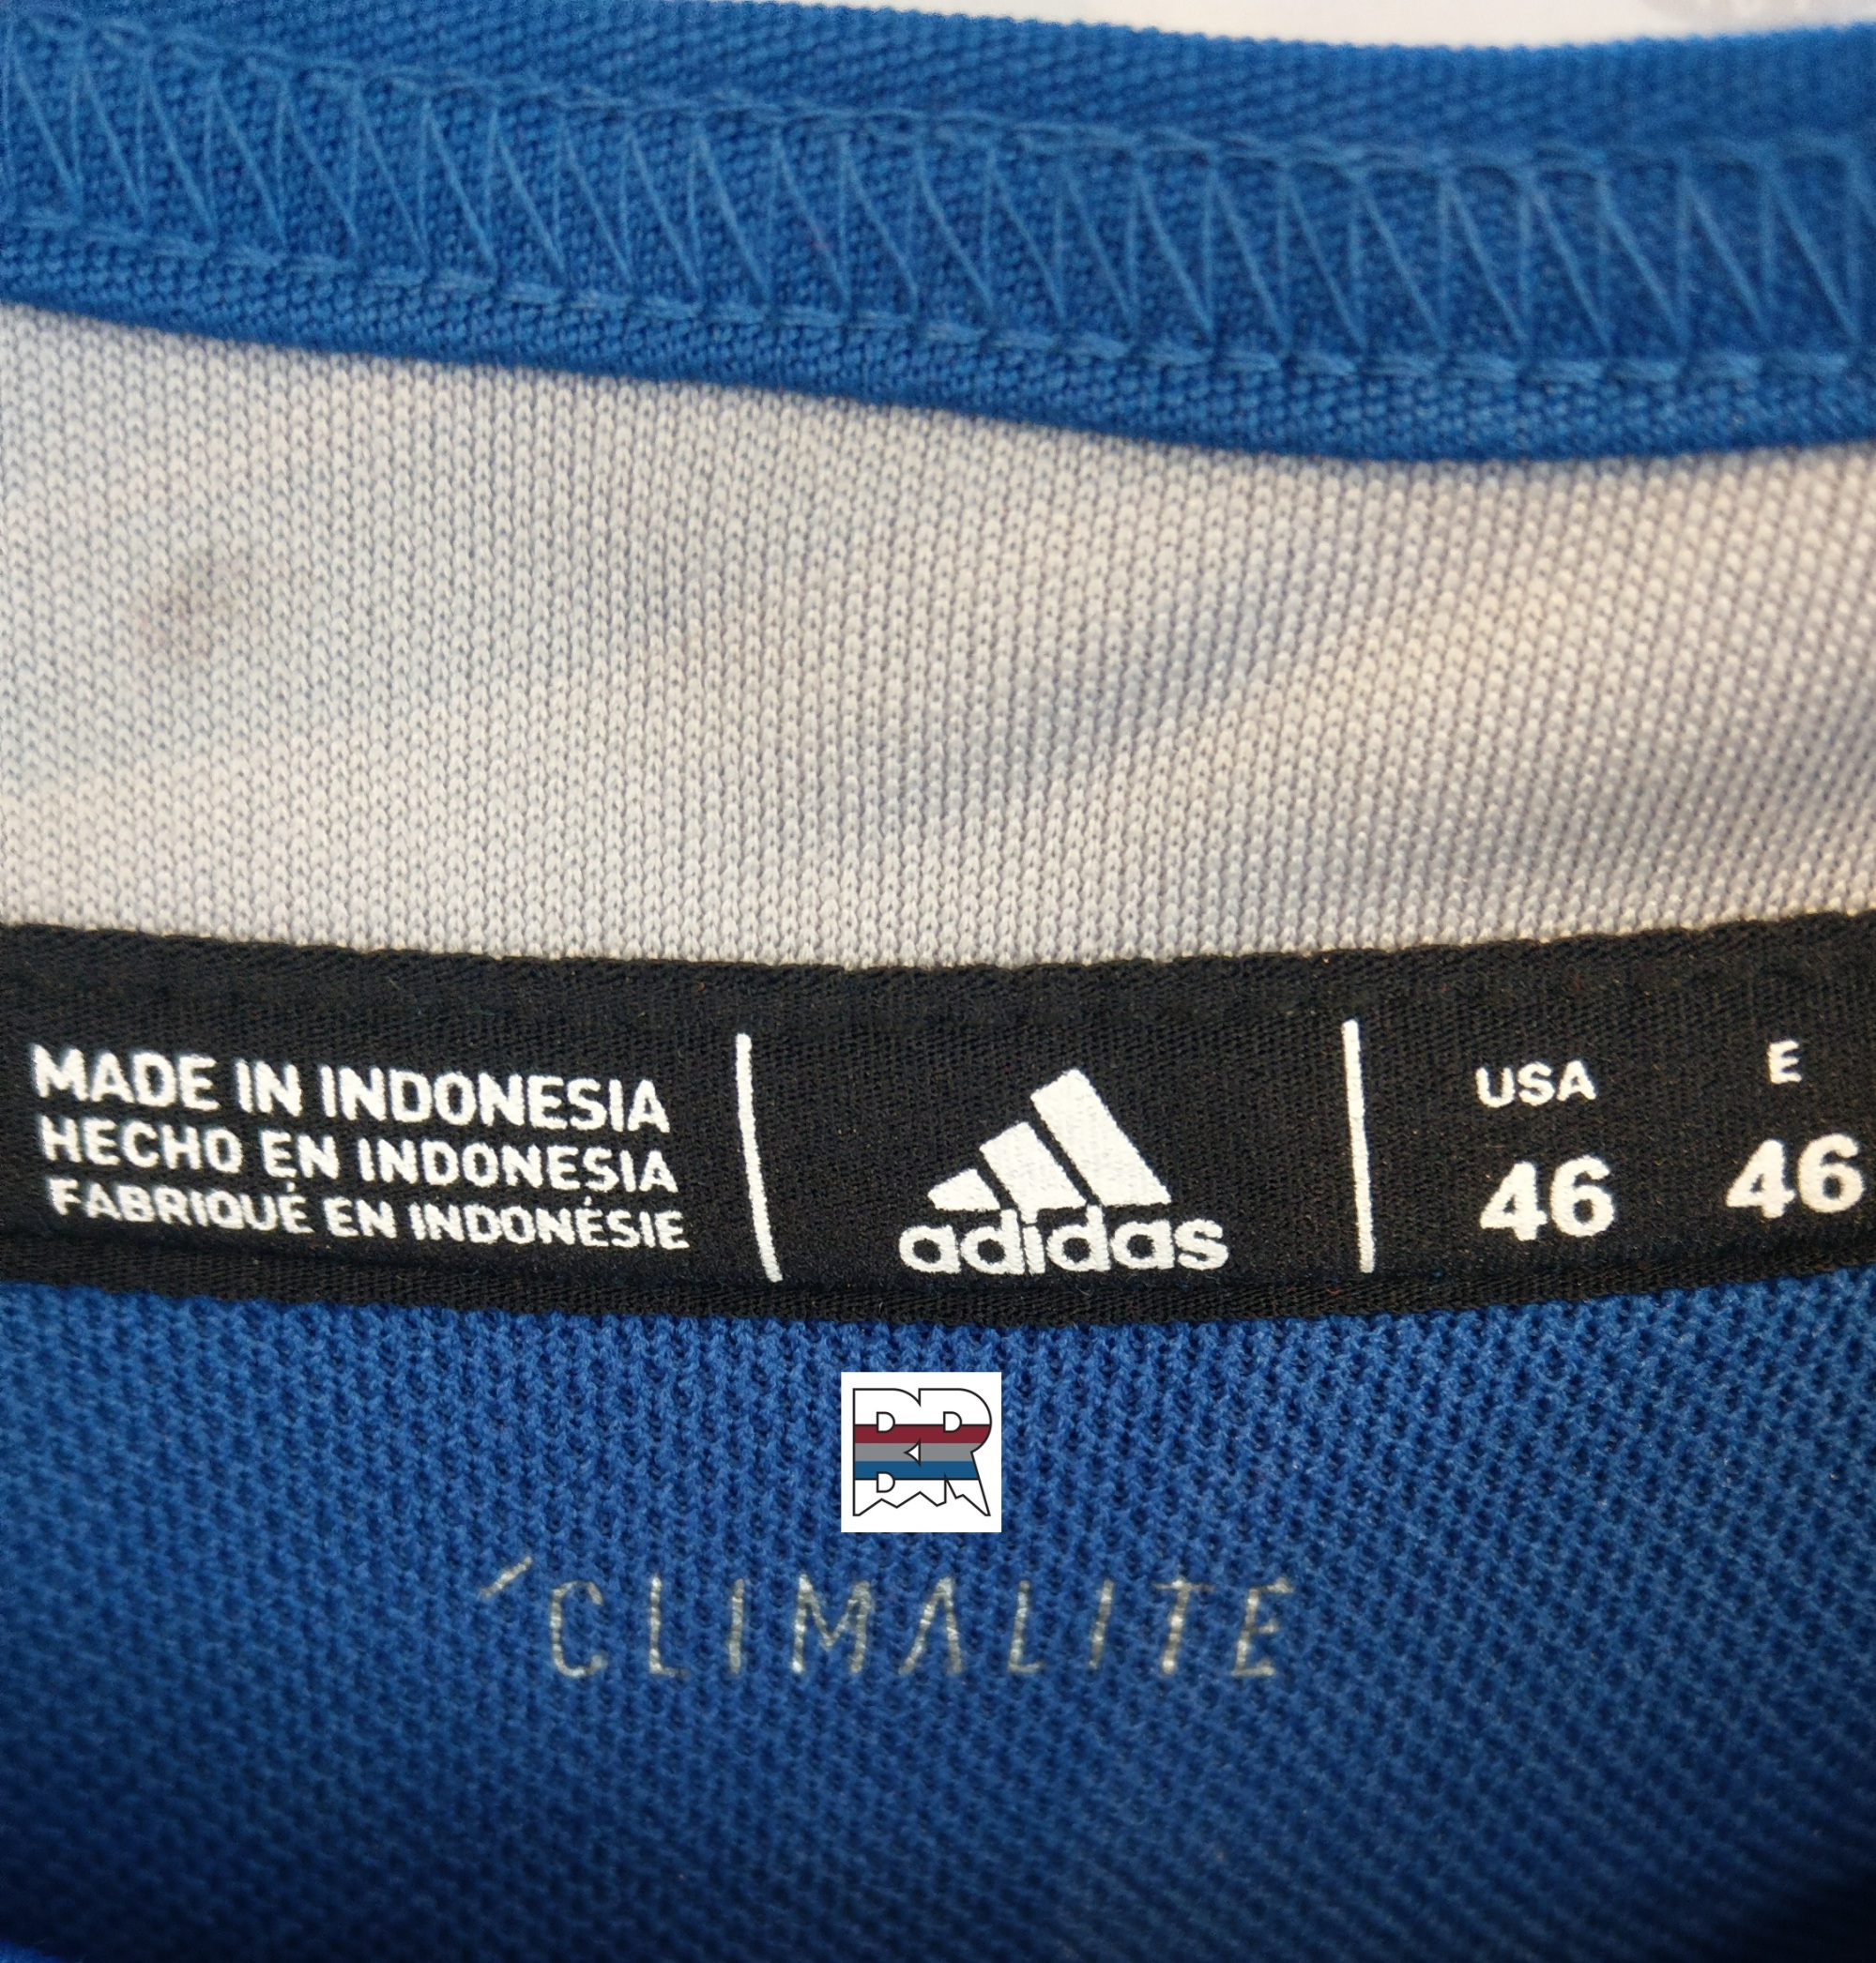 adidas-home-neck-crop.jpg?w=2000